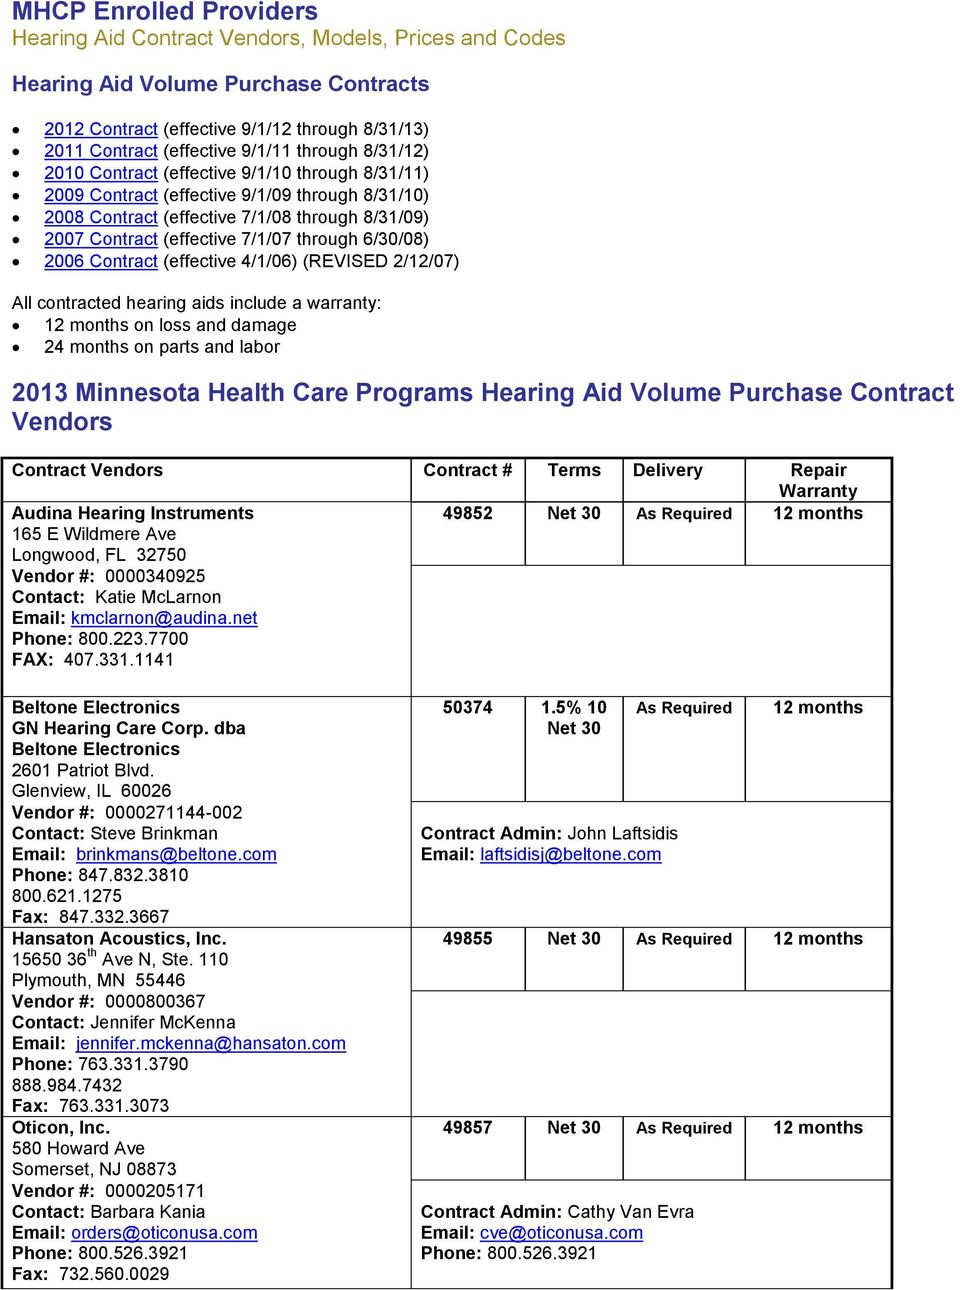 2013 Minnesota Health Care Programs Hearing Aid Volume Purchase